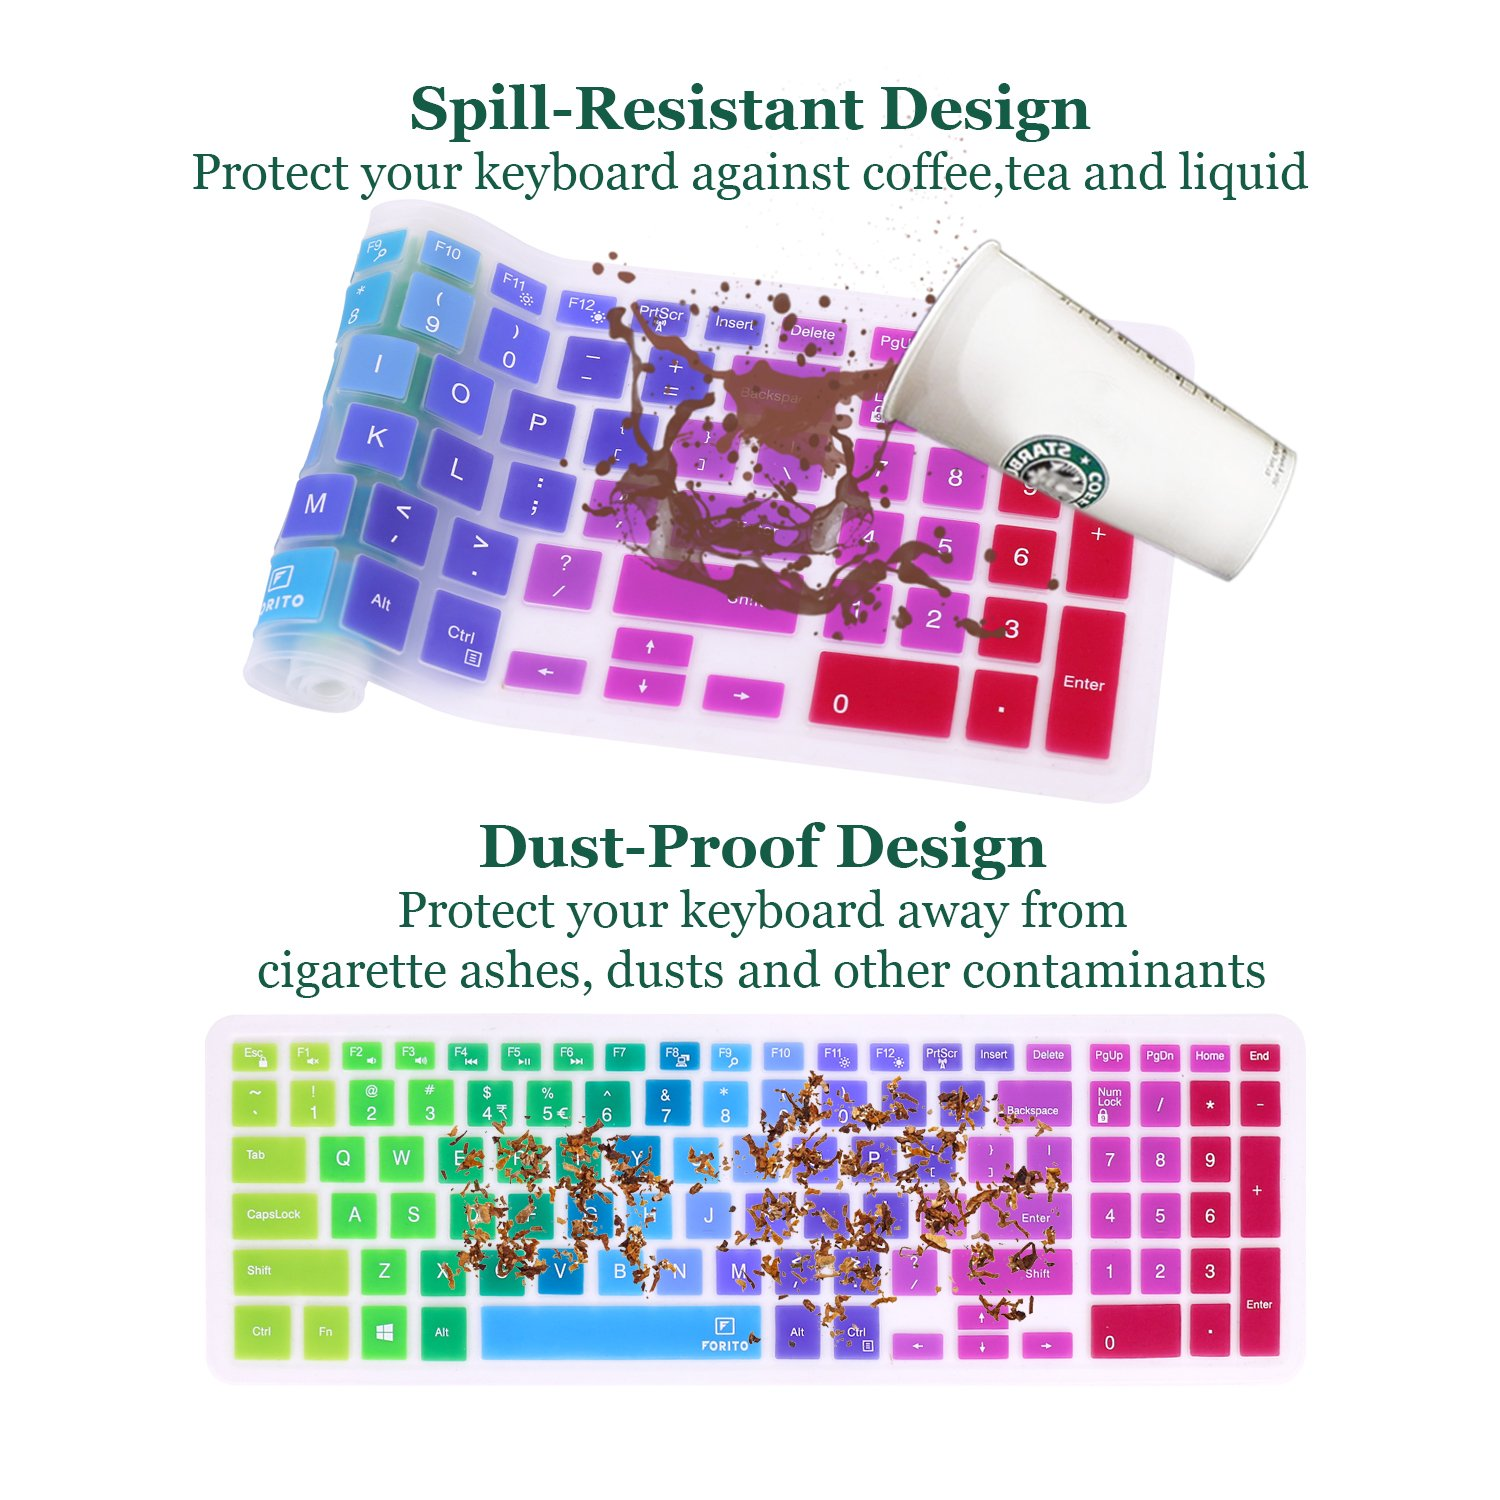 Keyboard Cover Compatible Dell Inspiron 15 3000 5000 Series//New Inspiron 17 3000 Series//Insprion 17 7786 //Dell G3 15 17 Series//New Dell G5 15 Series//Dell G7 15 17 Series Rainbow